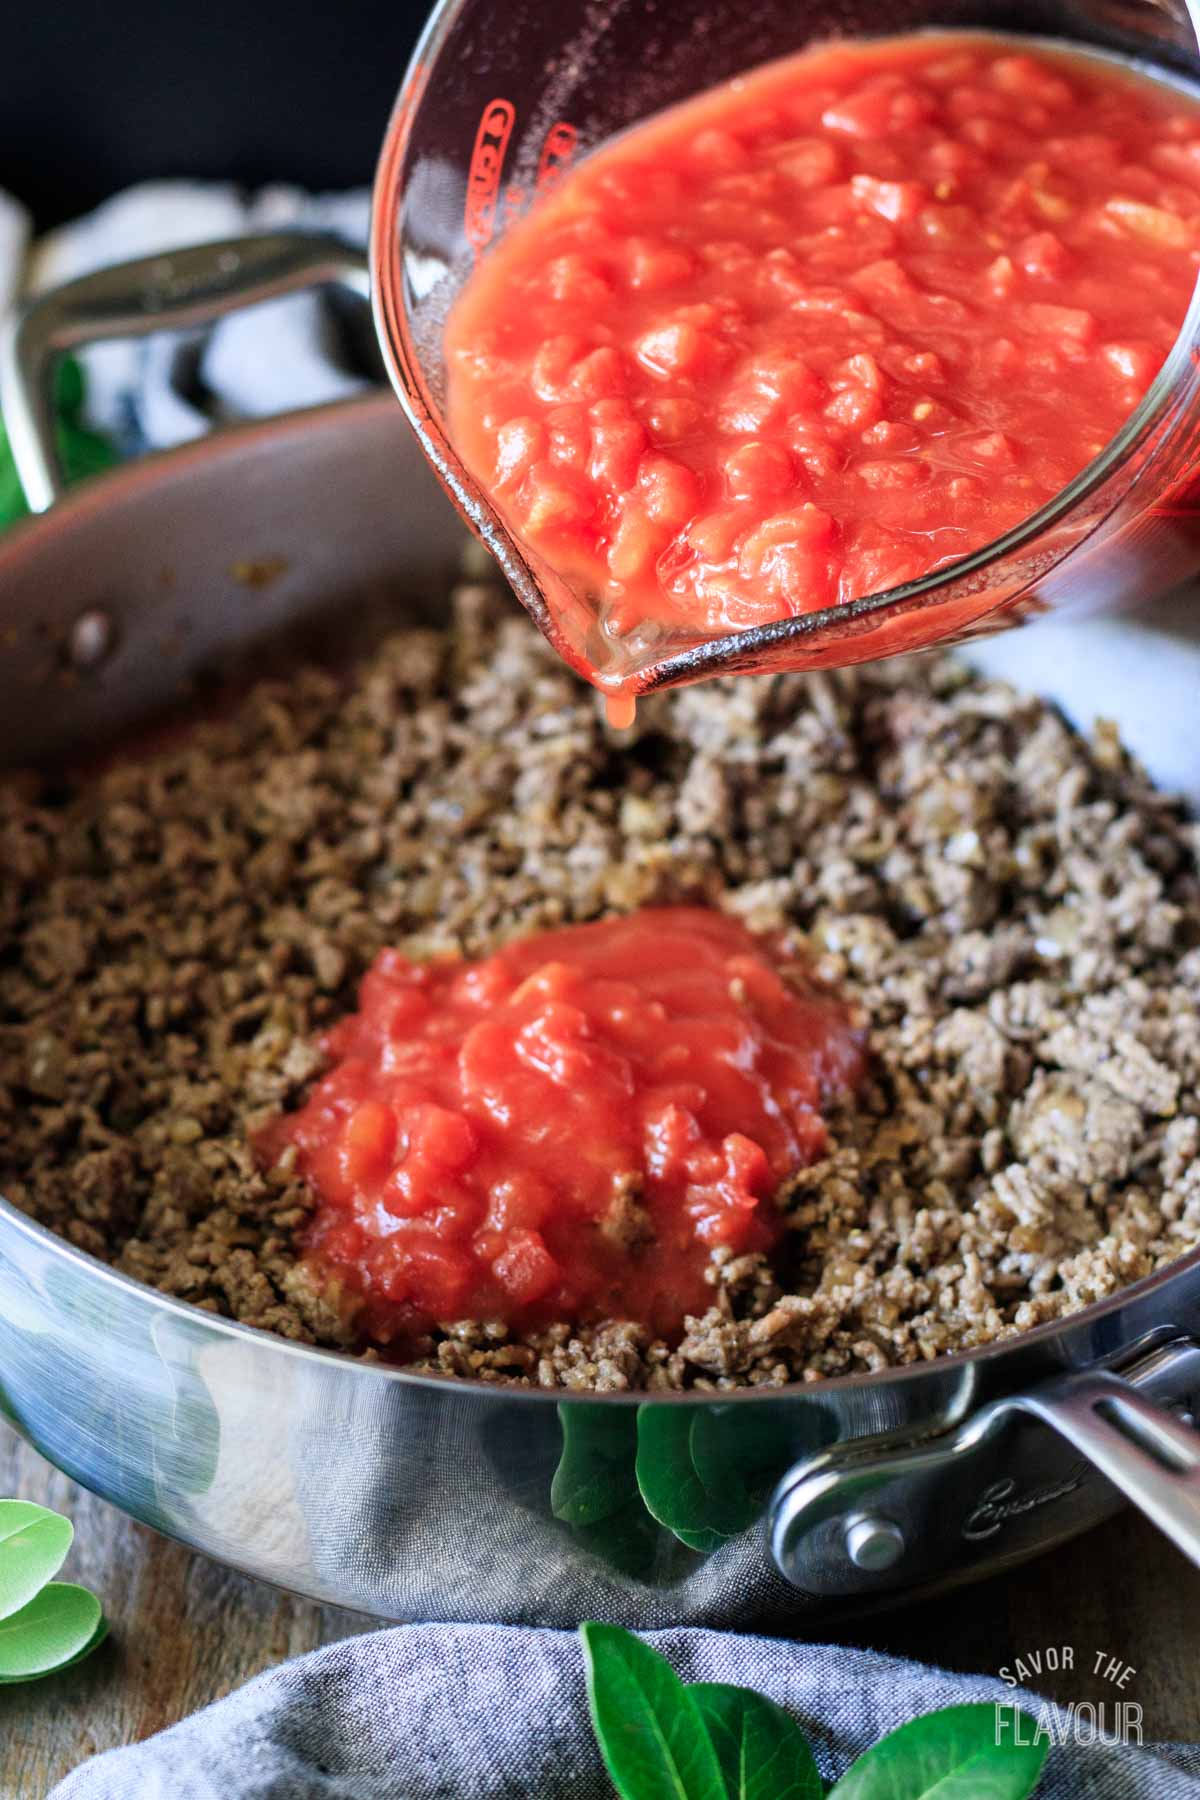 pouring tomatoes into a pan of hamburger meat